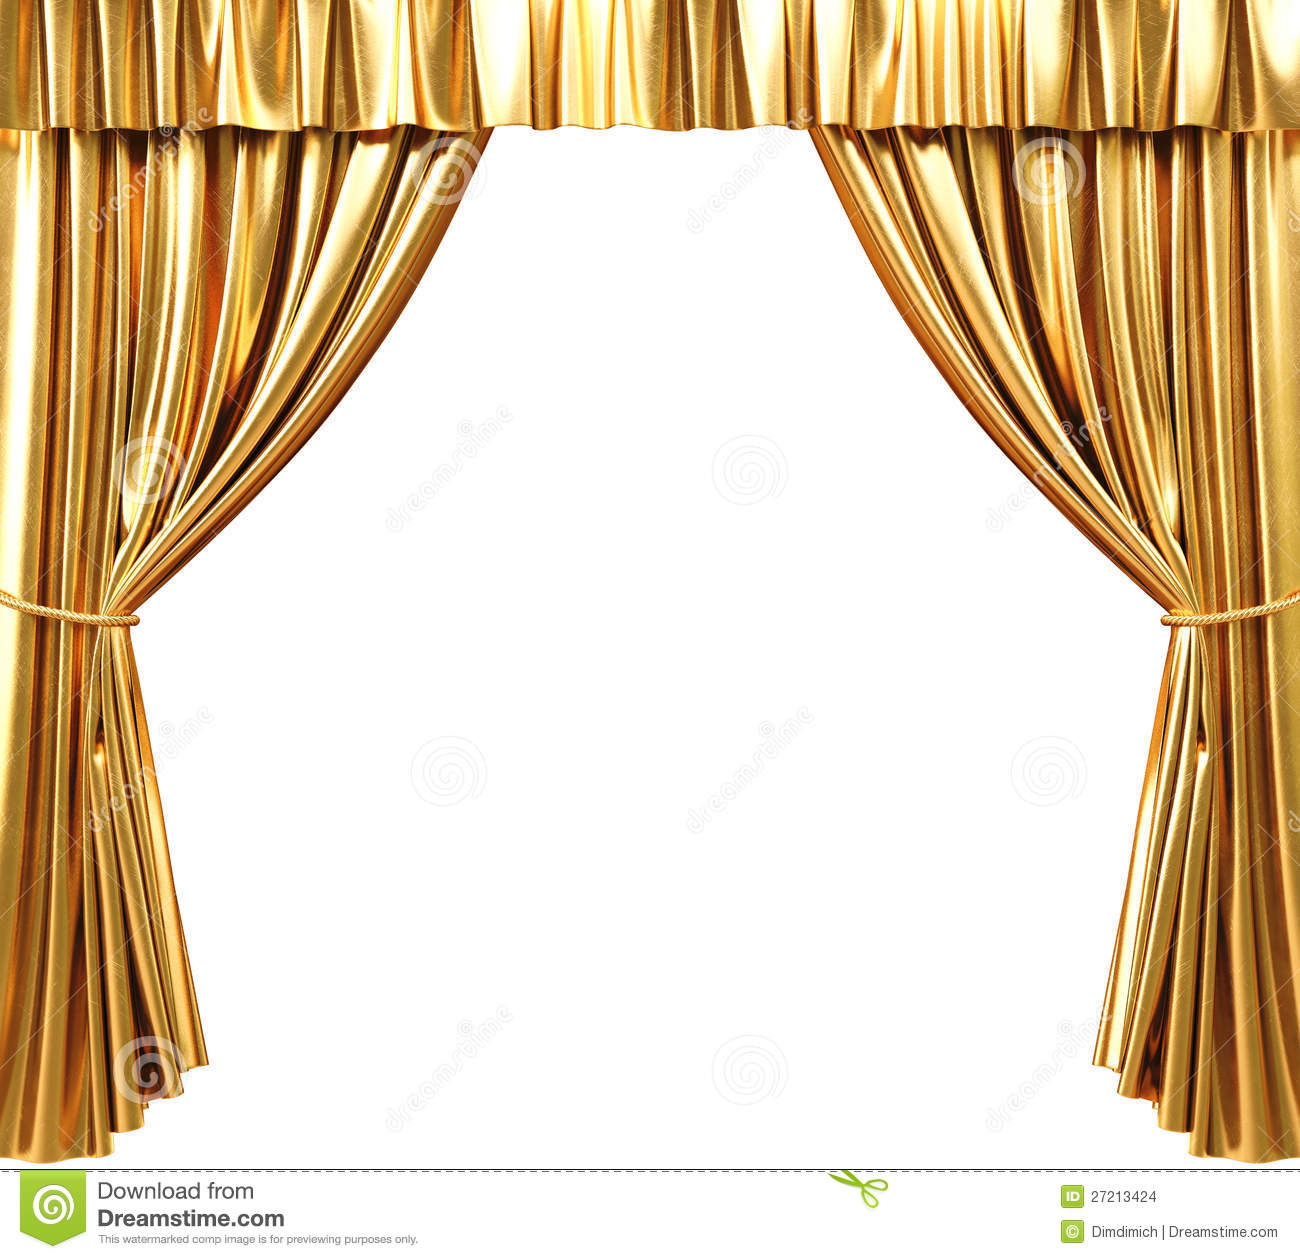 Curtain stock illustration illustration of golden image 27213424 - Pictures of curtains ...